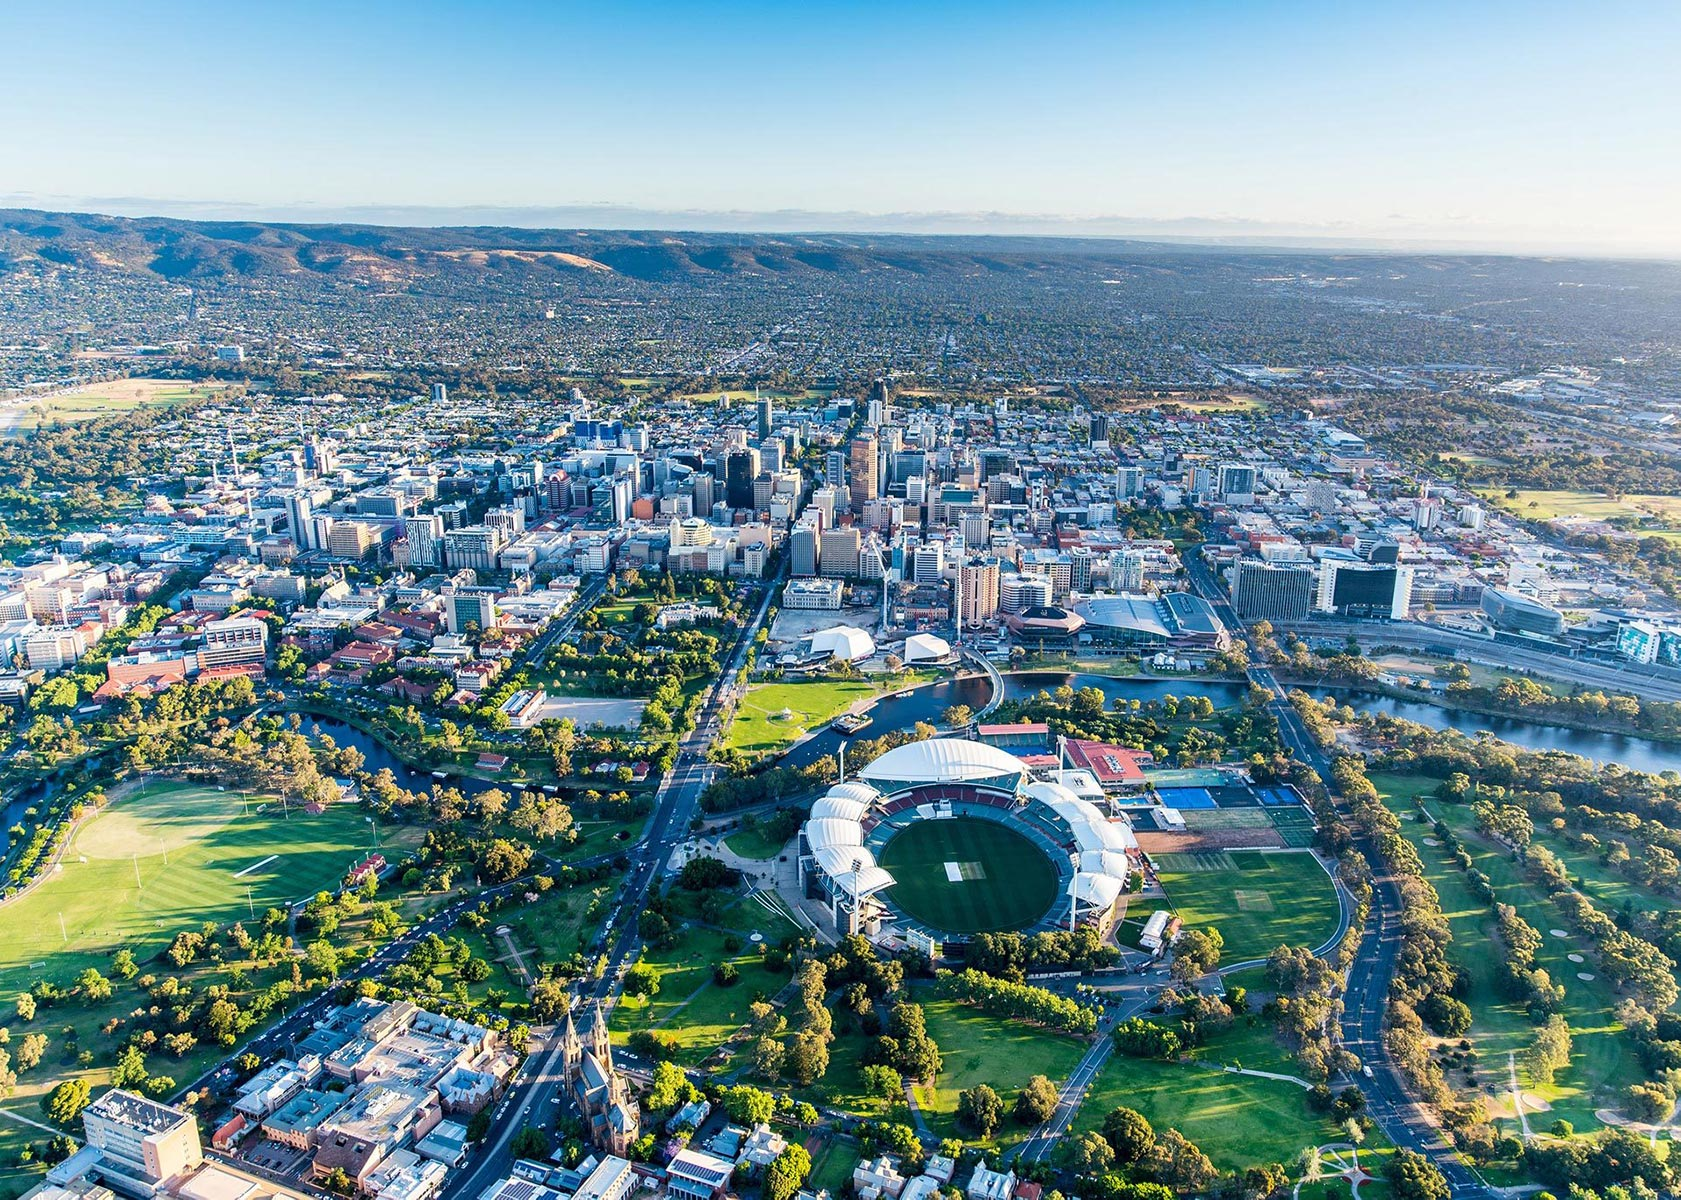 Aerial view of Adelaide looking down over the river torrens across the CBD and suburbs all the way to the hills. Parklands and trees feature as a vibrant green.